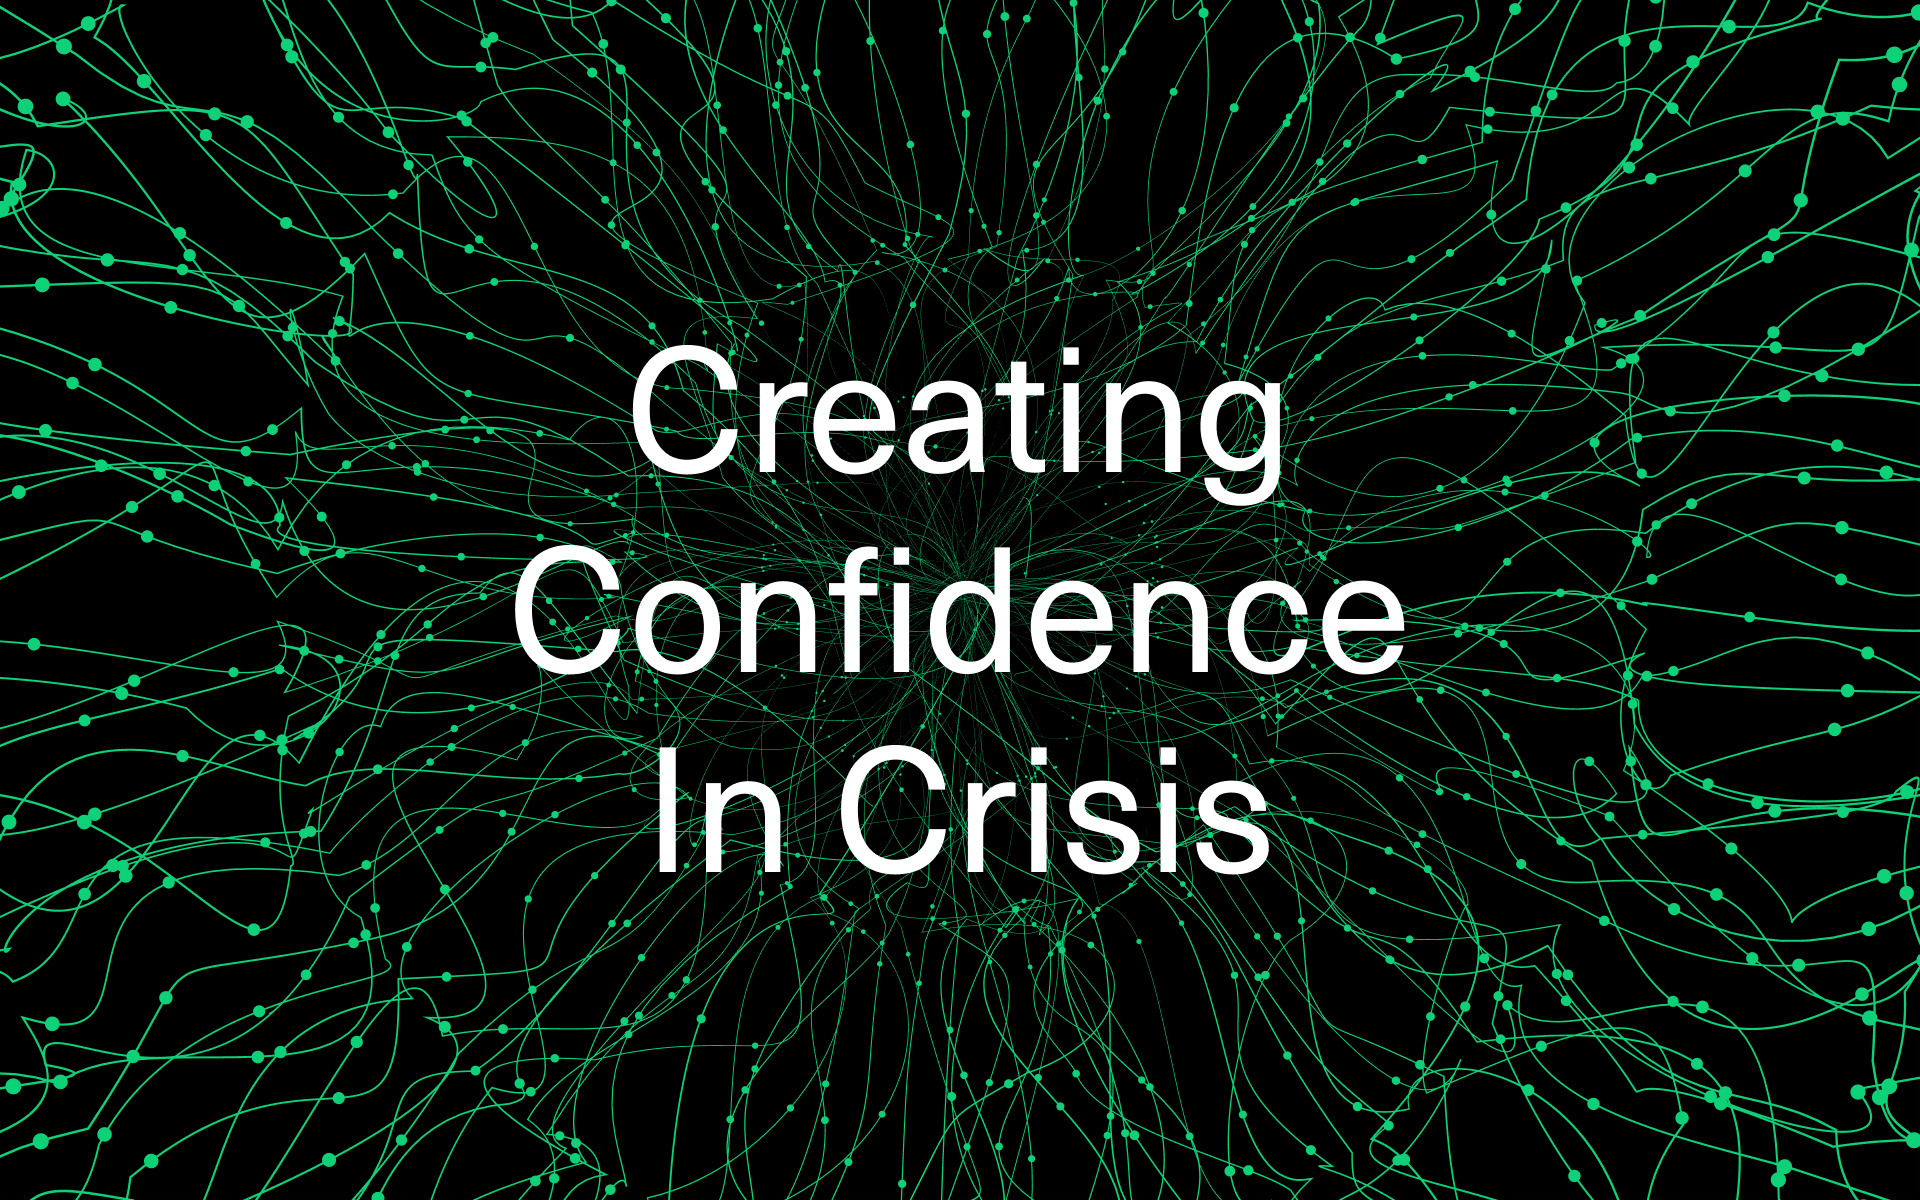 Creating Confidence In Crisis by Jeremy Frommer